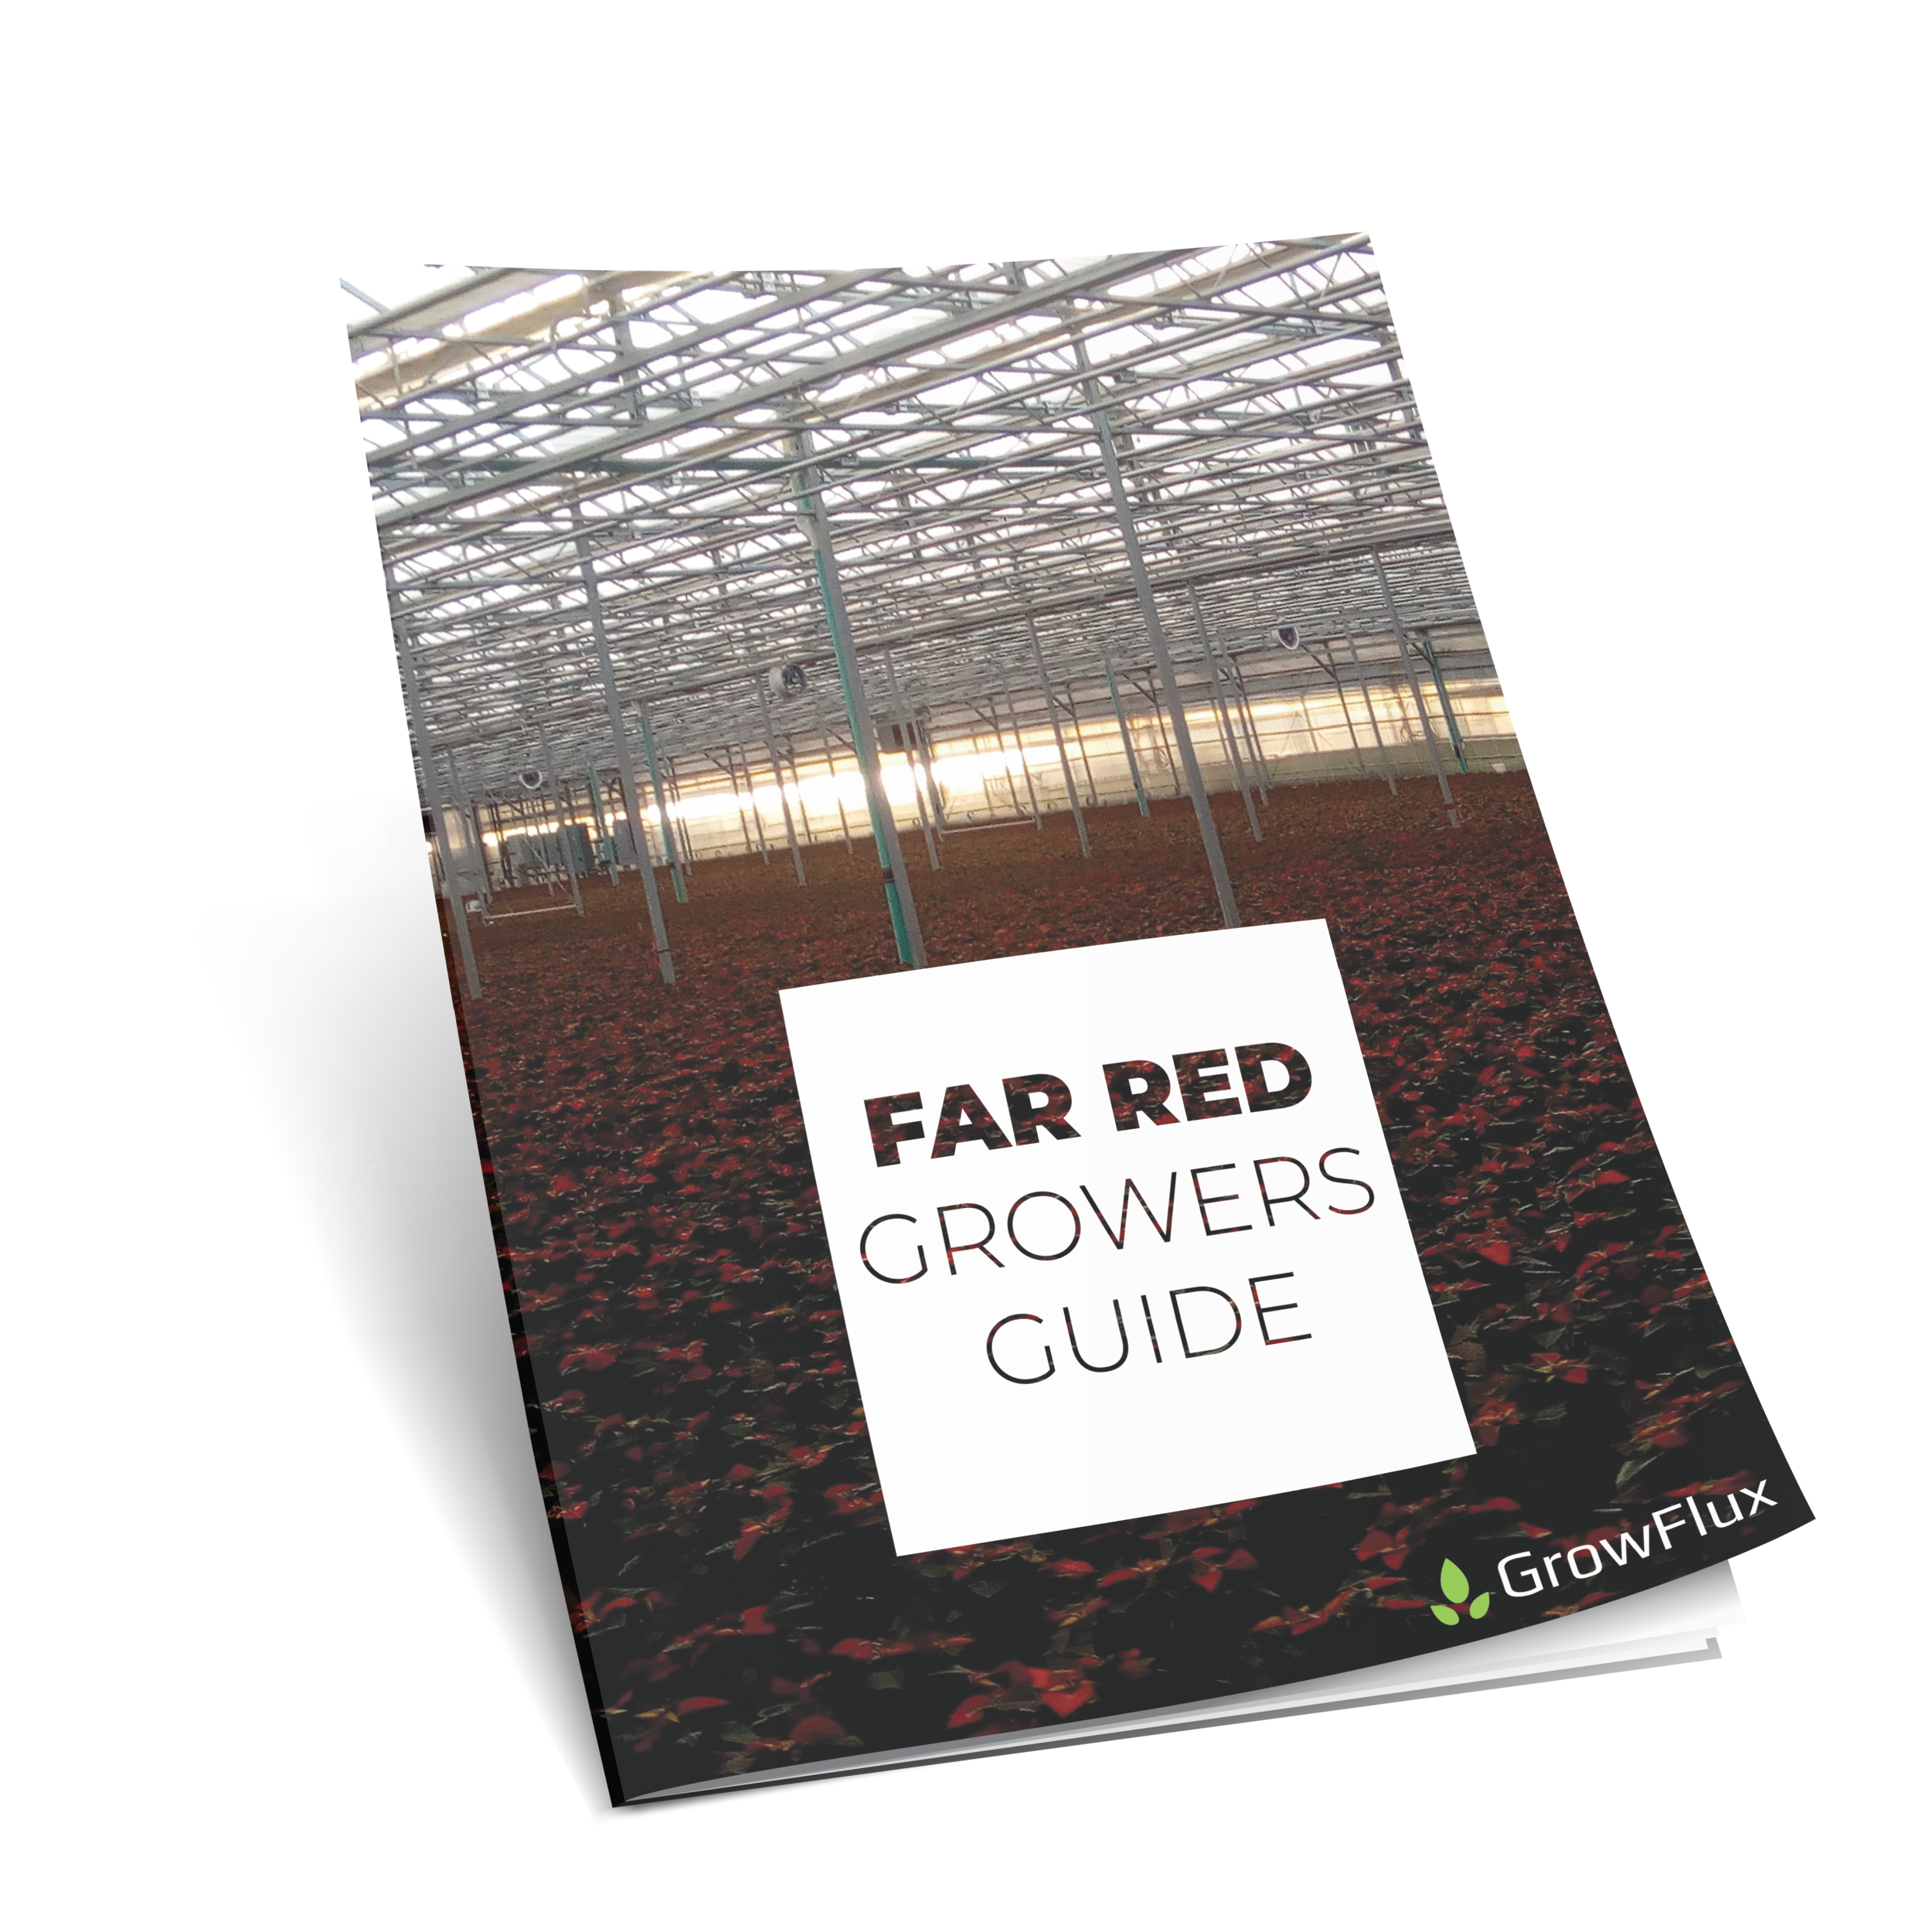 far red growers guide final-01-01.png